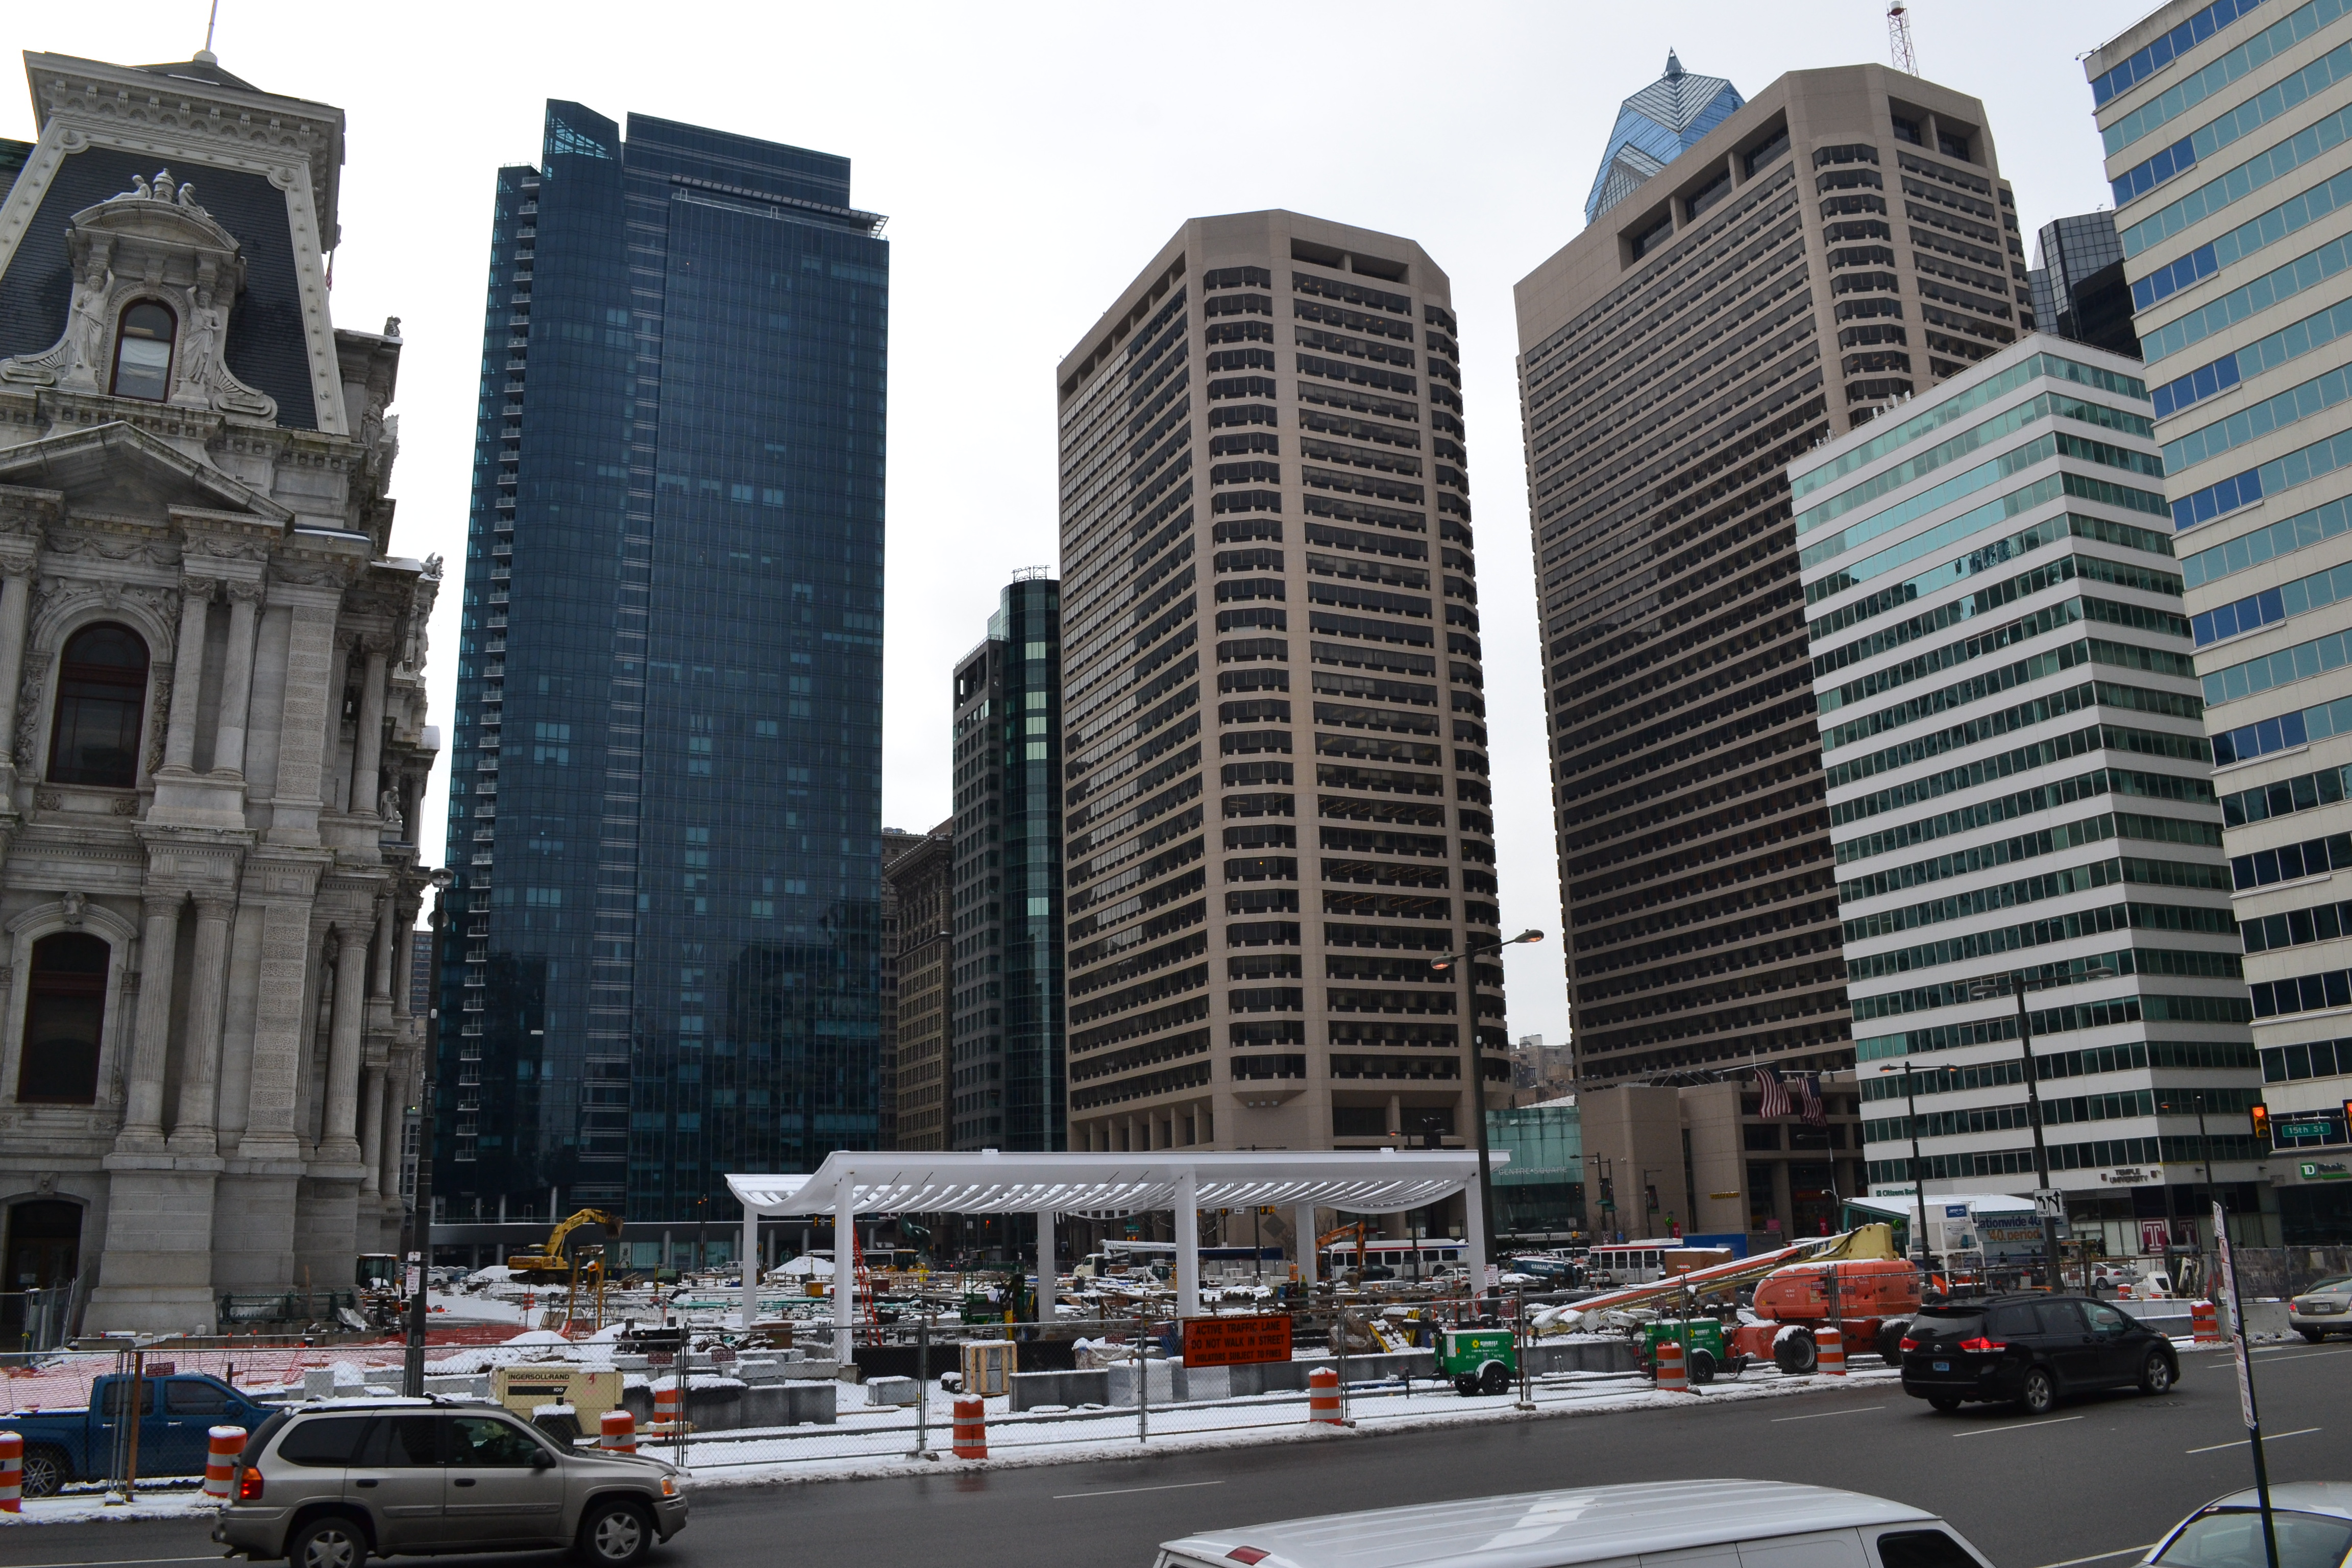 The structure is dwarfed by the surrounding skyscrapers